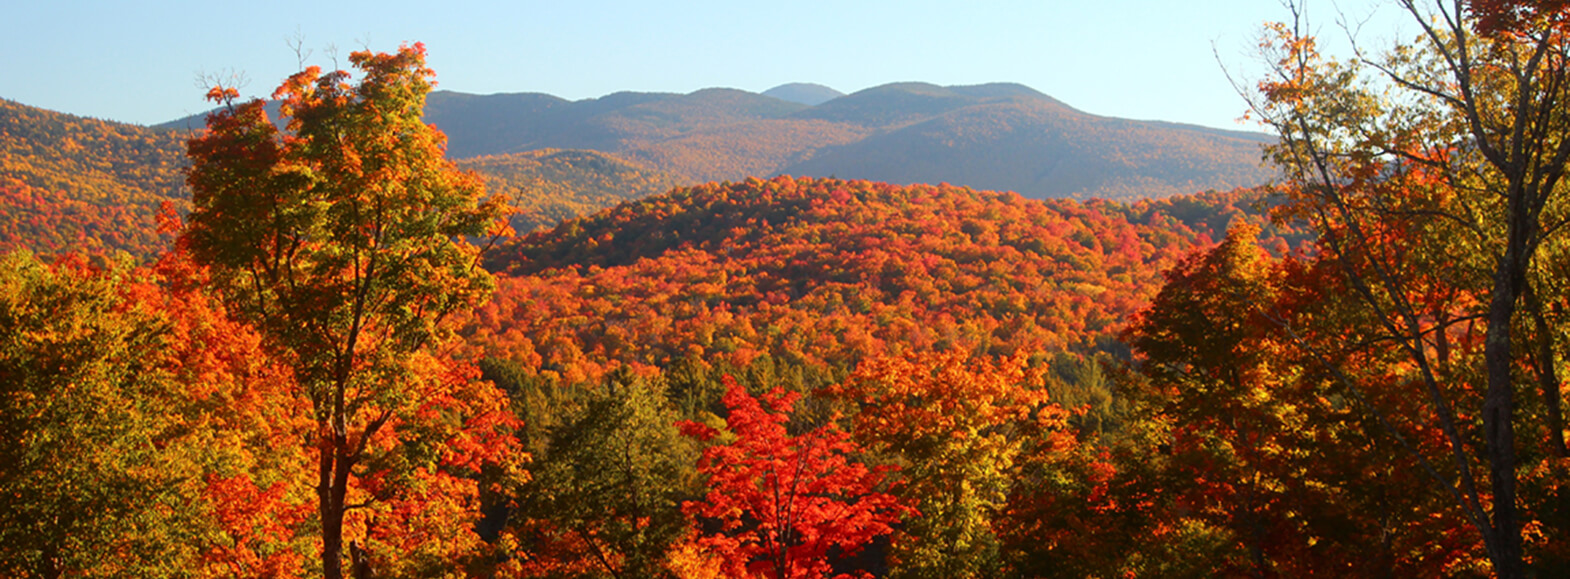 When the light is right, the foliage looks fluorescent in the Adirondack Mountains of Northern New York. No filters.